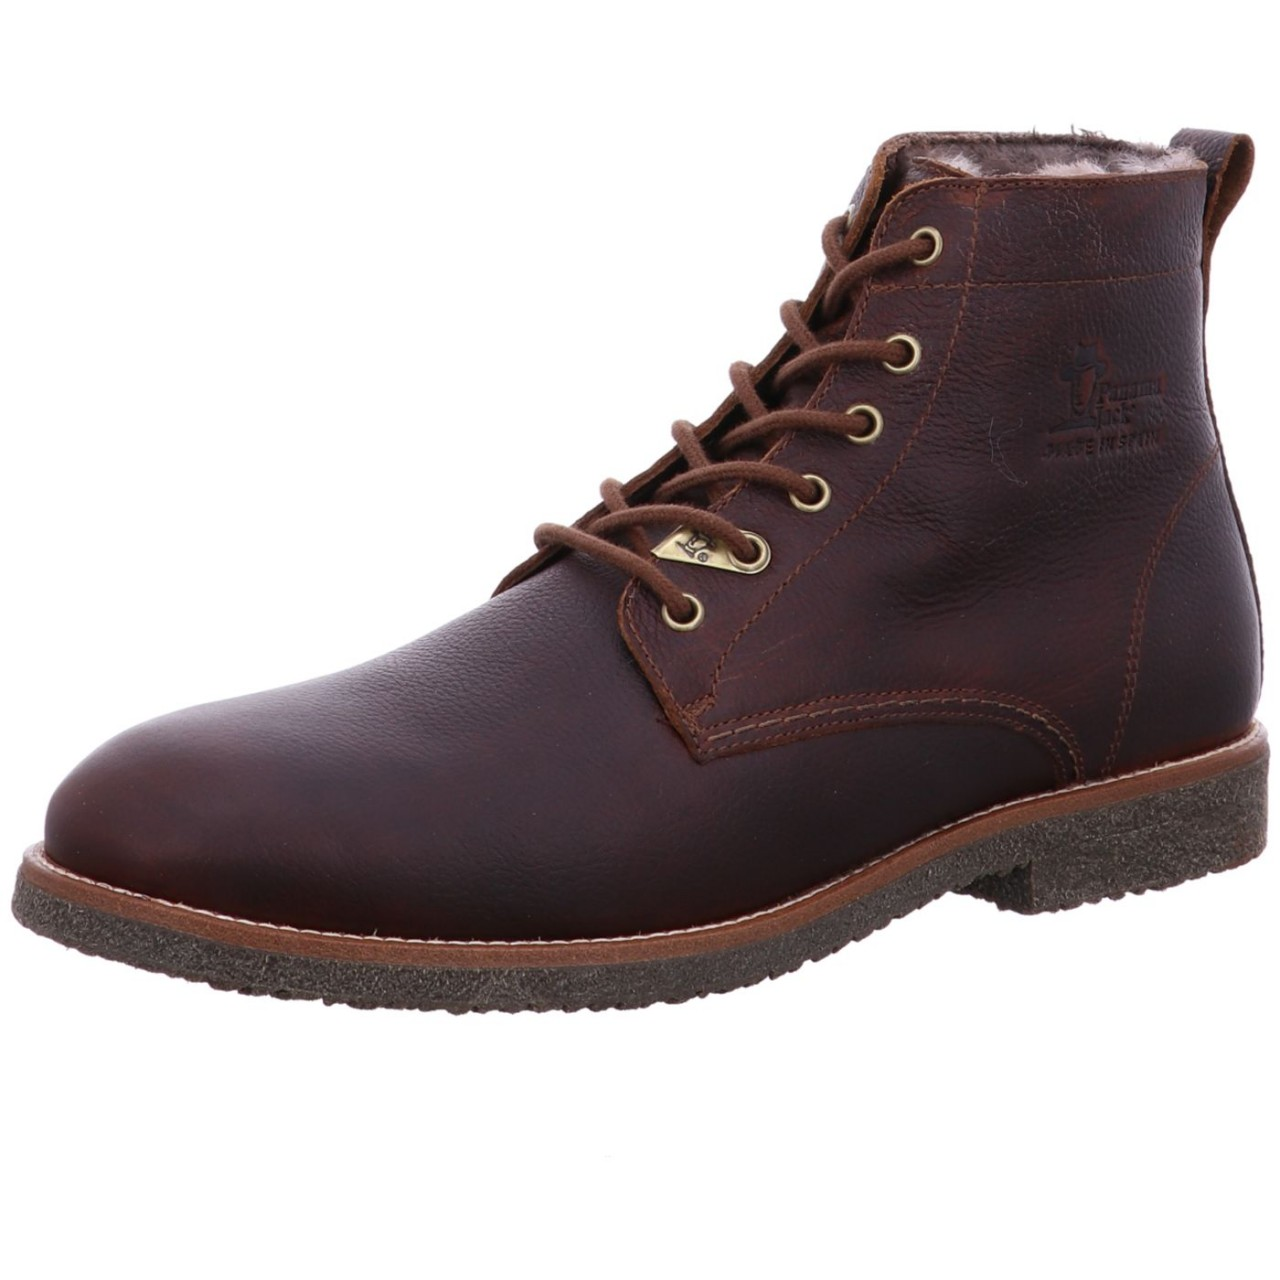 Panama Jack Boot Glasgow Igloo C6 Braun Glasgow Igloo C6 chestnut